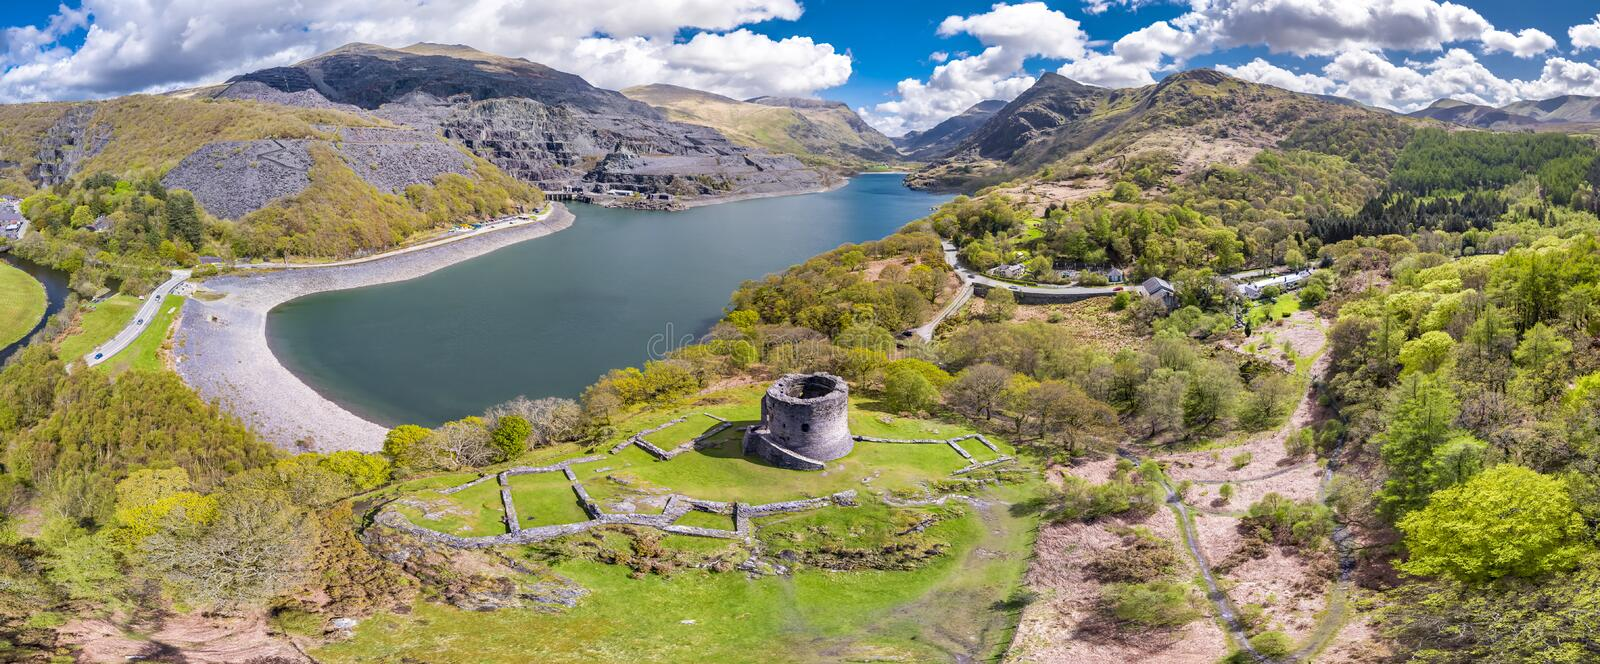 Aerial of Dolbadarn Castle at Llanberis in Snowdonia National Park in Wales. United Kingdom royalty free stock images